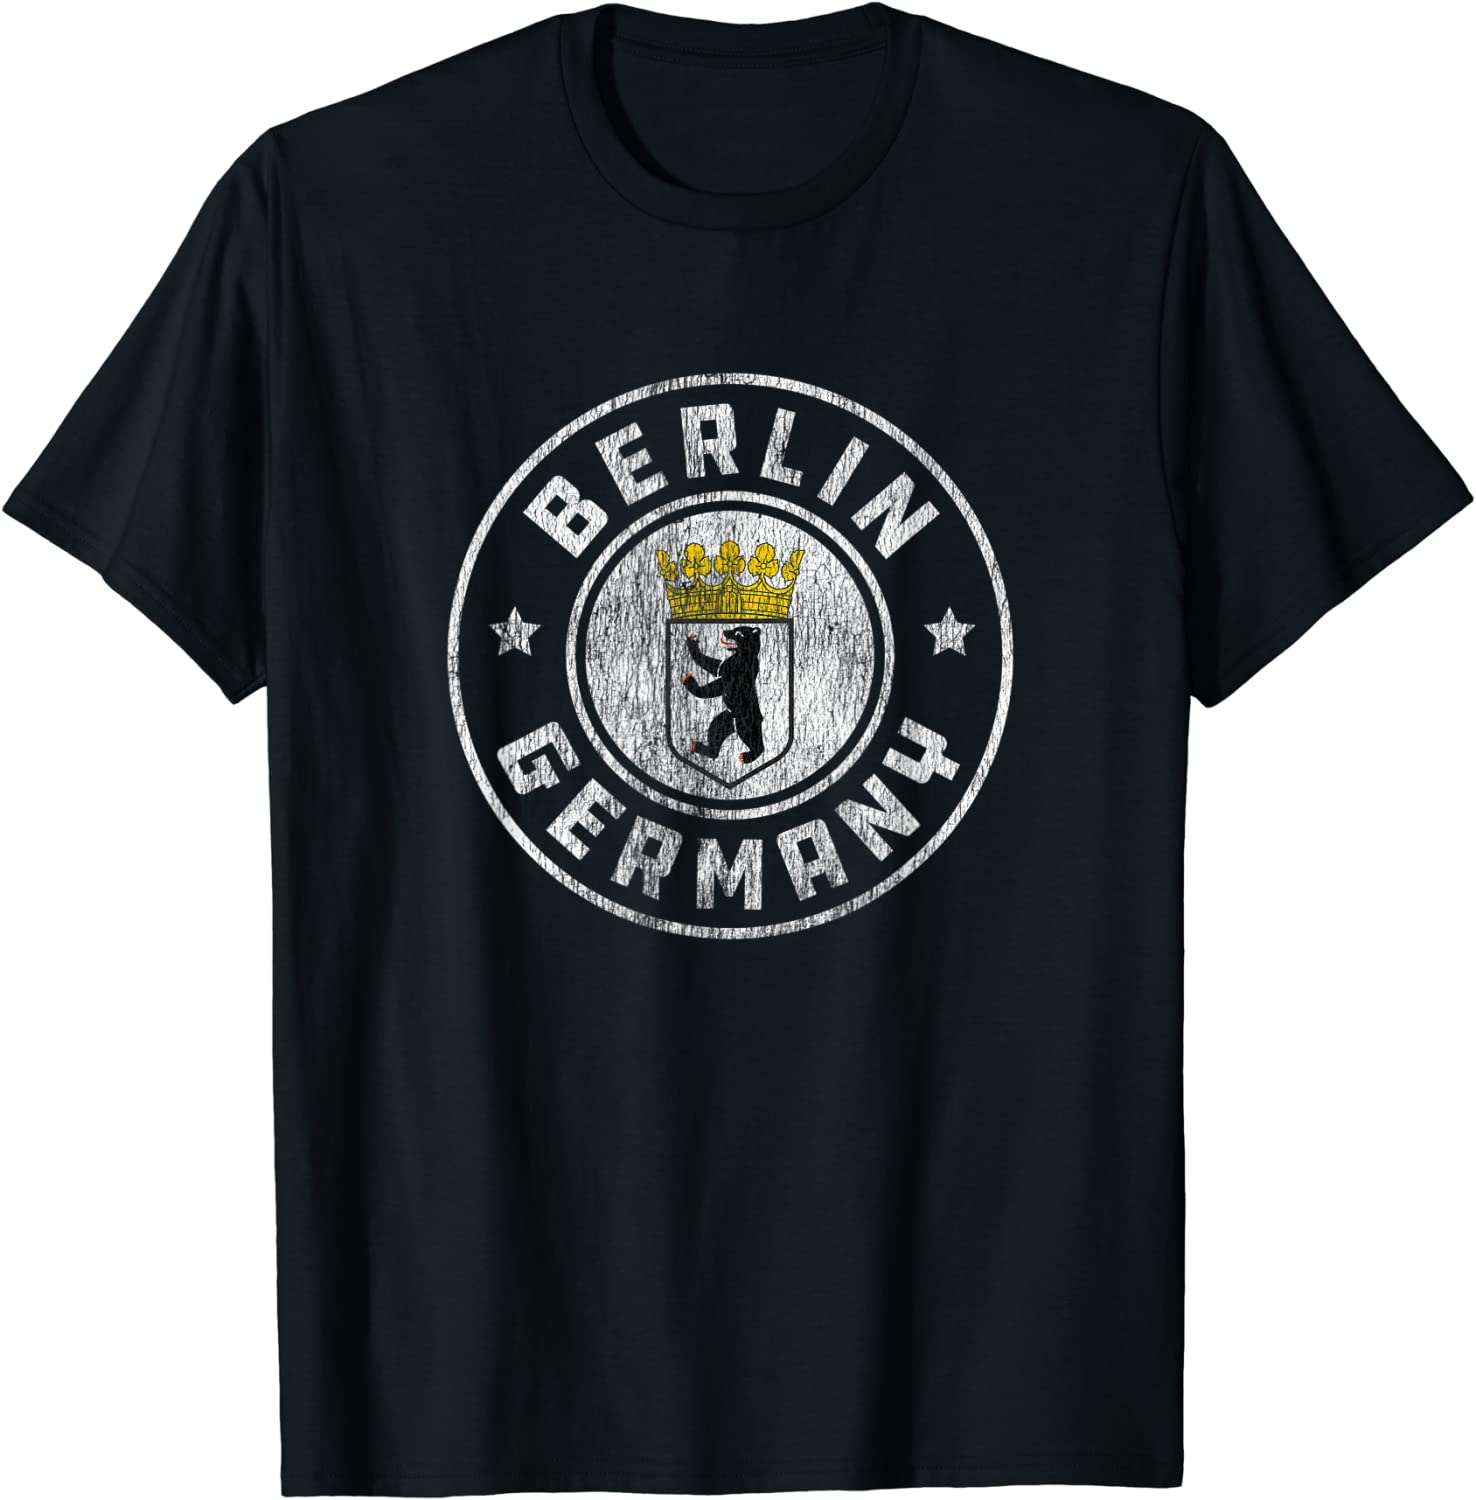 Berlin Germany Vintage Distressed Logo T-Shirt - Classic Fit